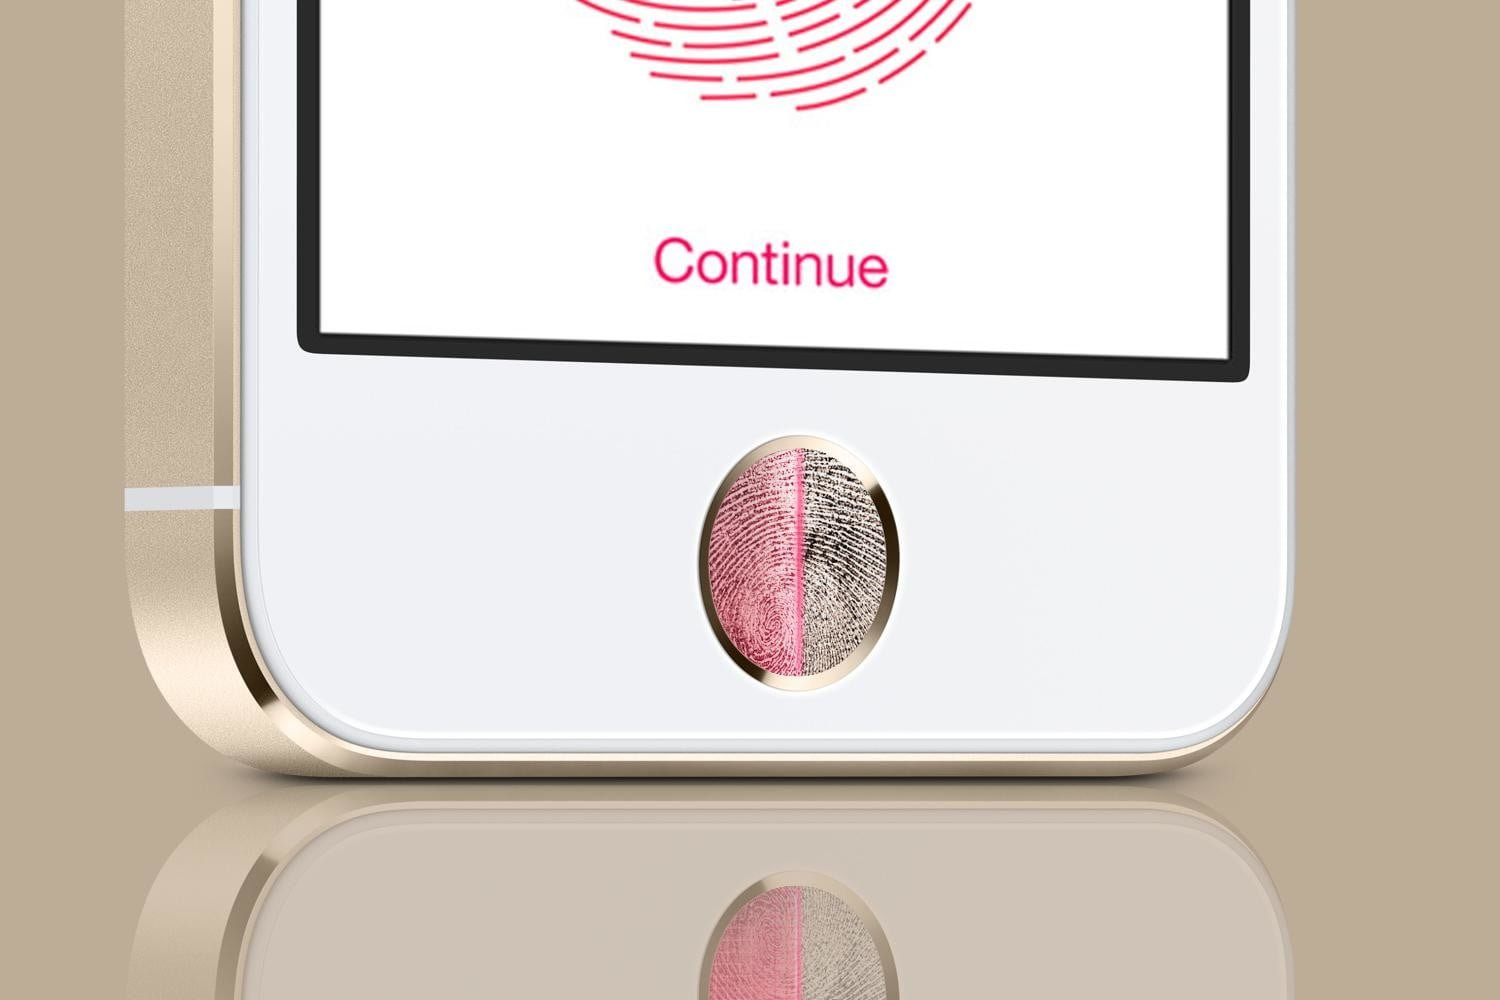 Police are using fingerprints of dead criminals to access locked iPhones